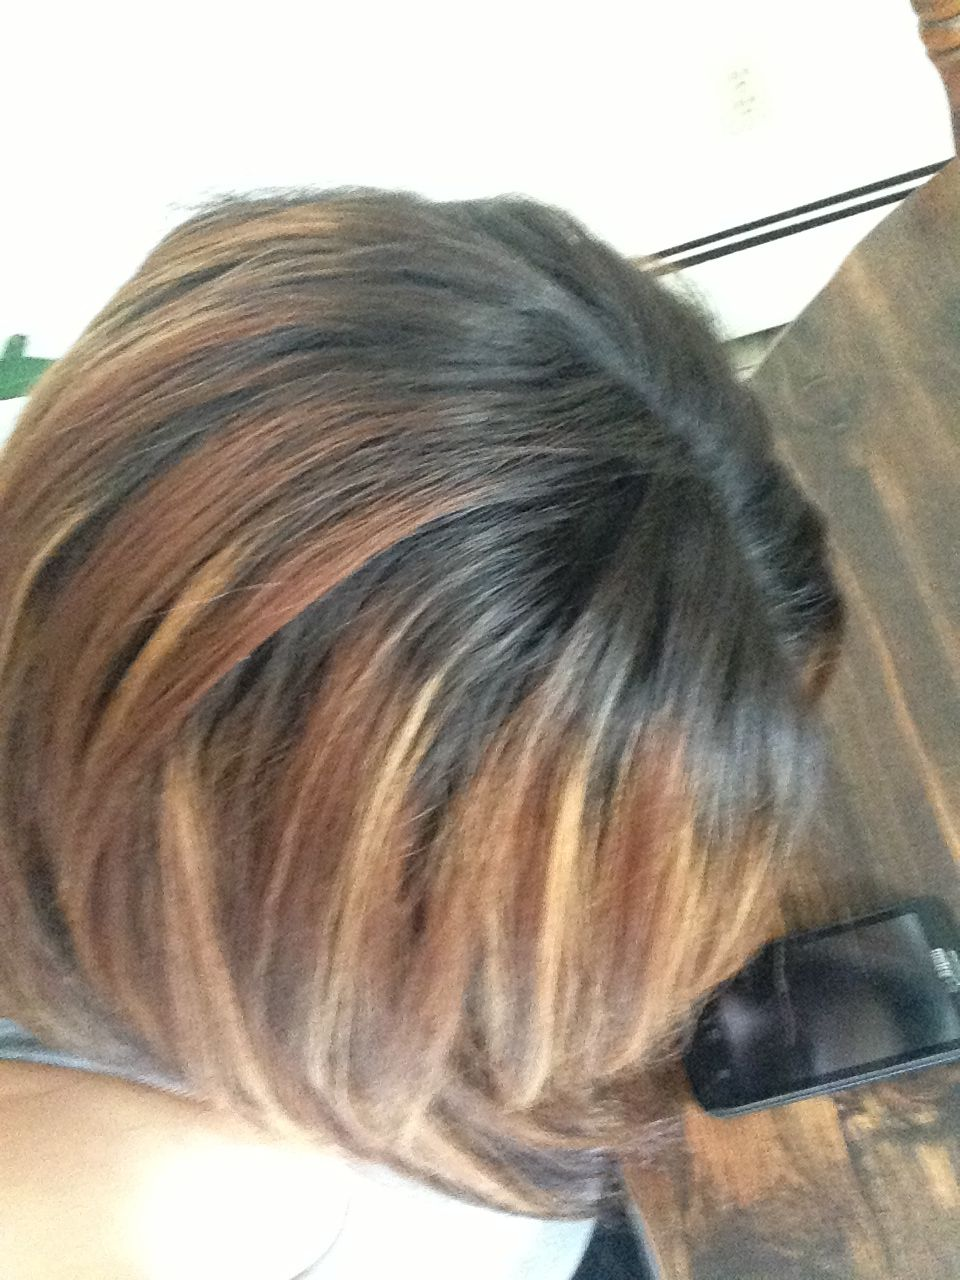 Current hair color hair ideas wild and normal pinterest